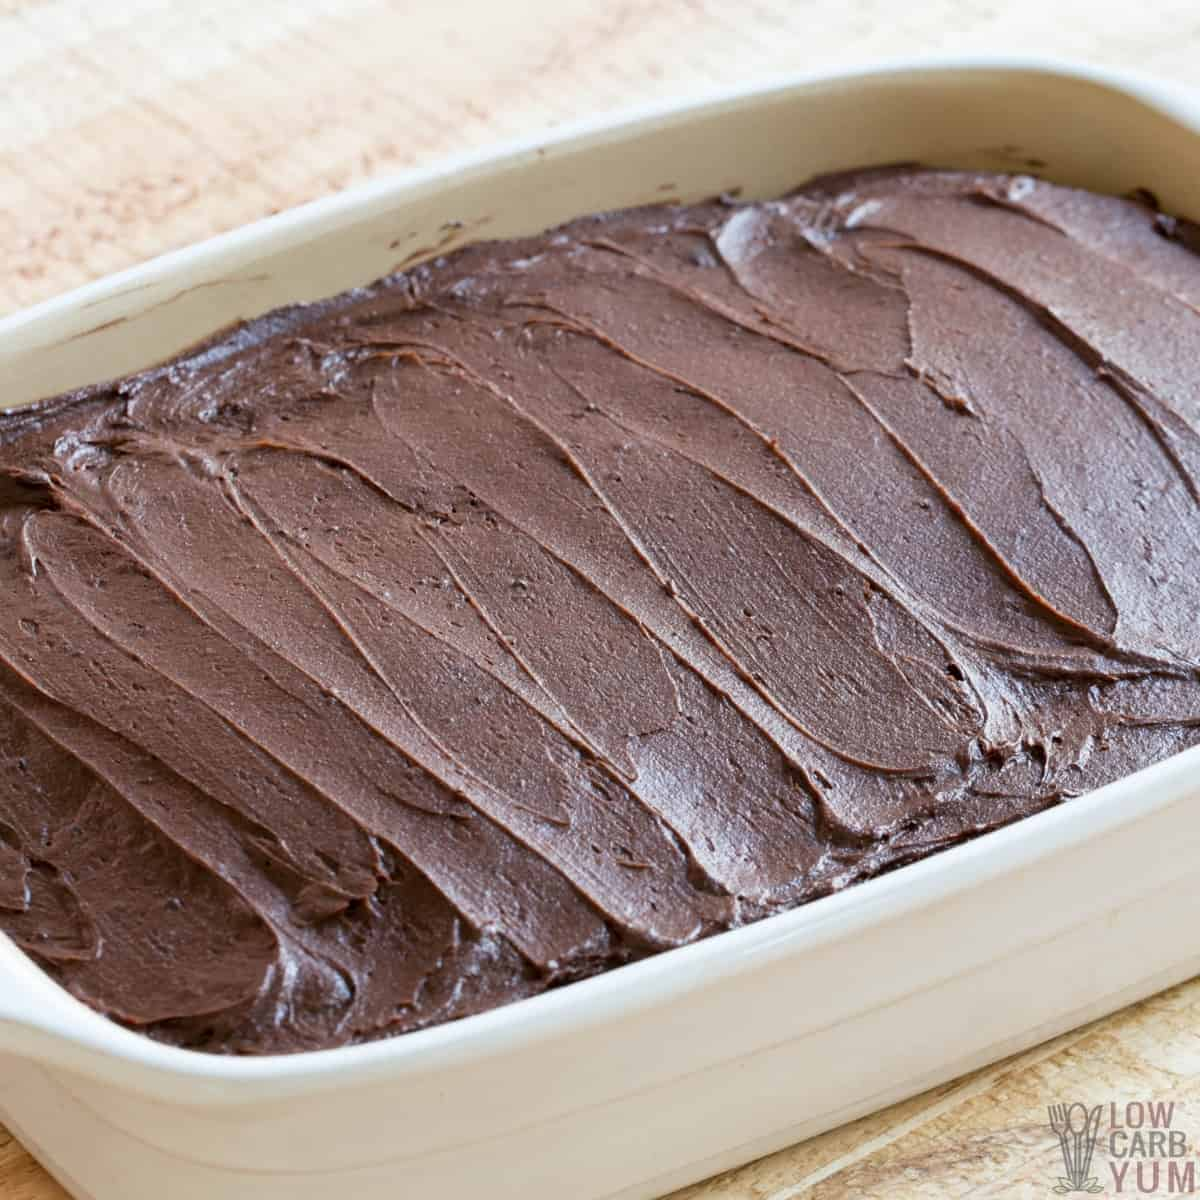 keto chocolate frosting featured image